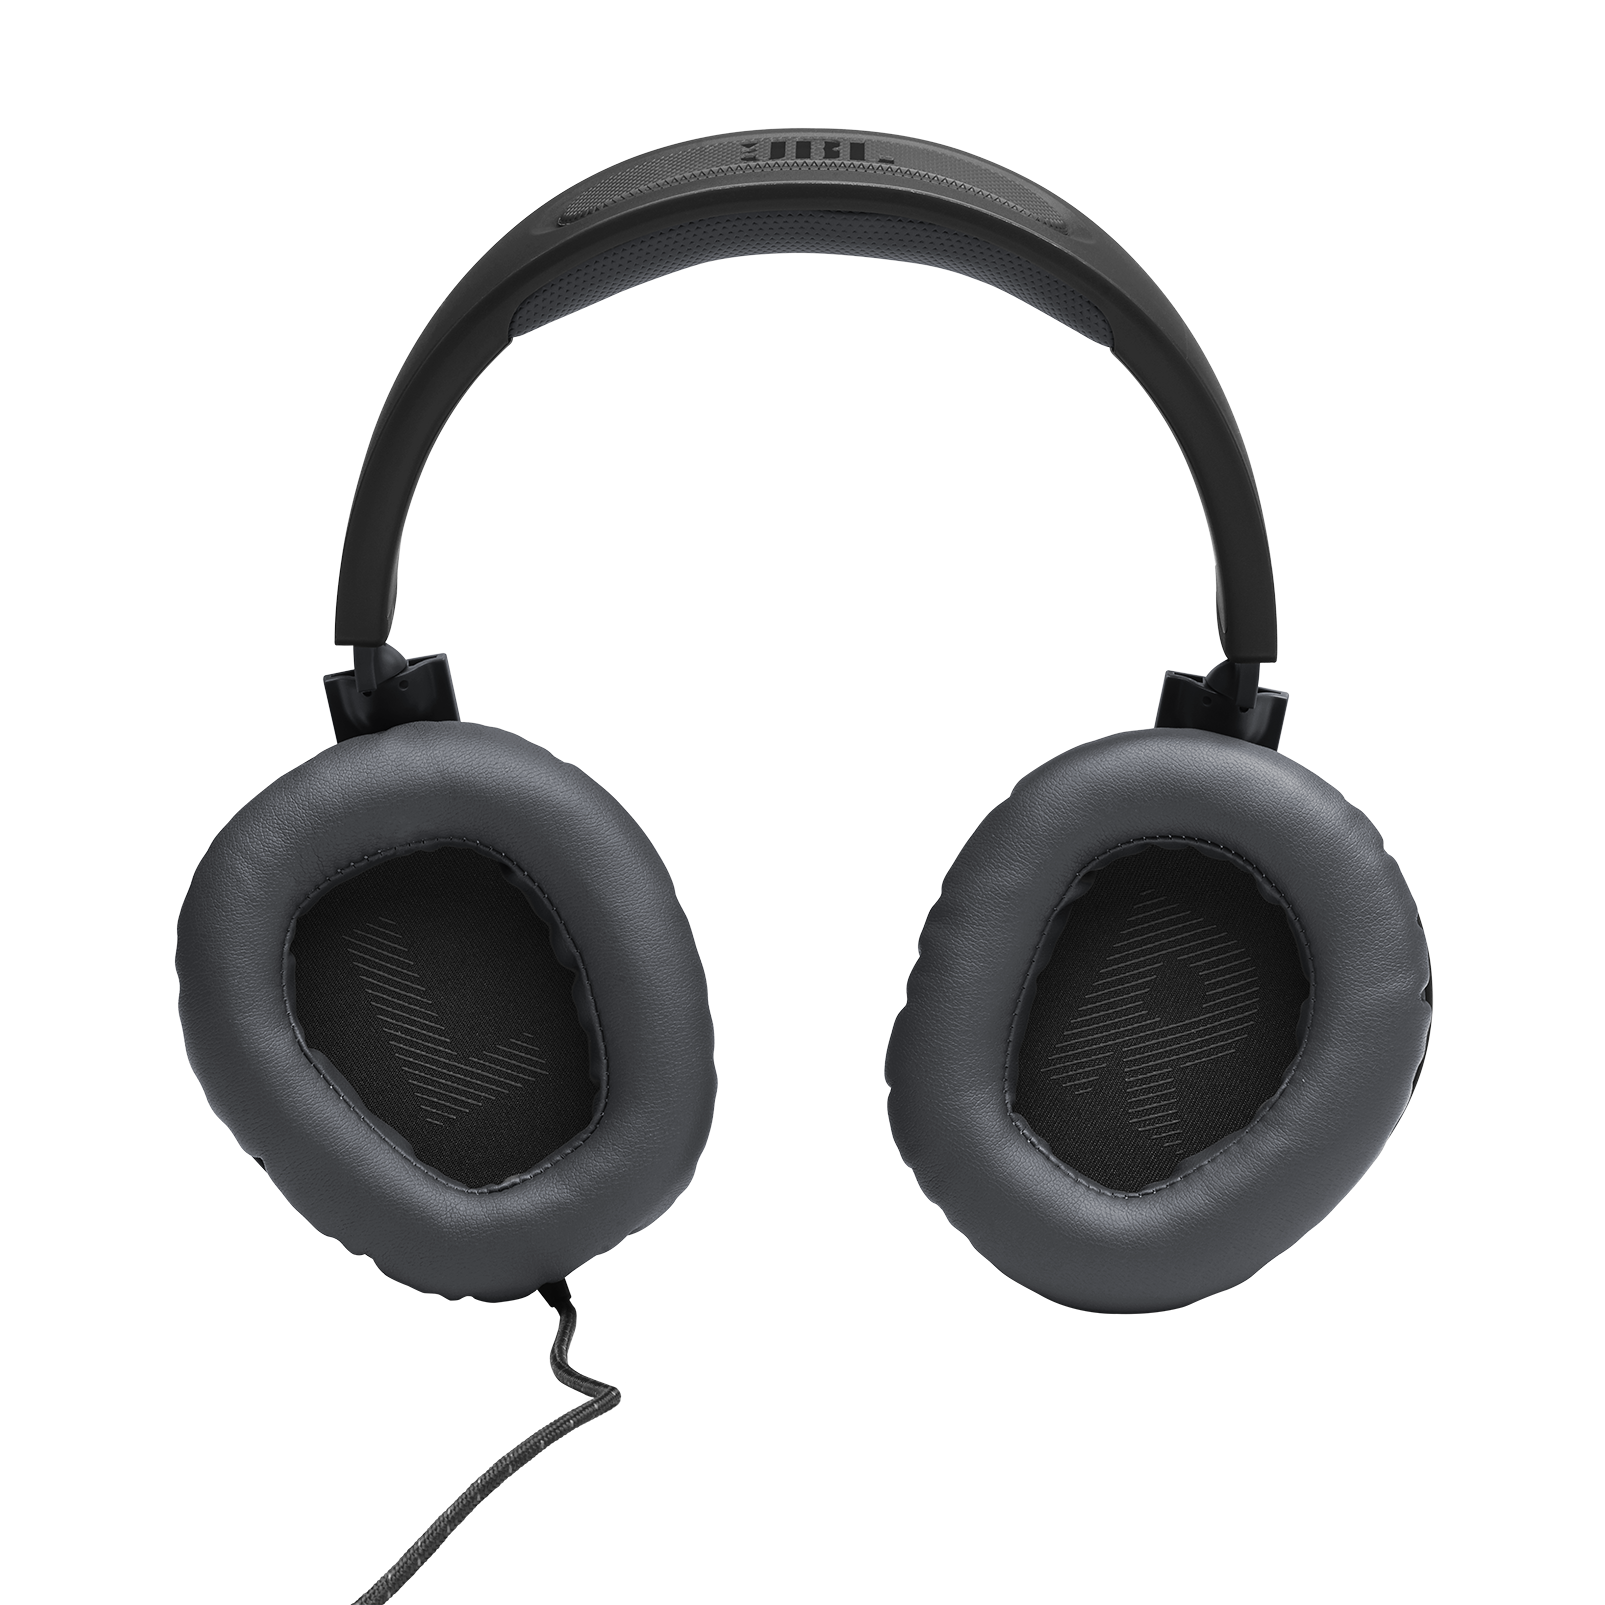 JBL Quantum 100 - Black - Wired over-ear gaming headset with a detachable mic - Detailshot 3